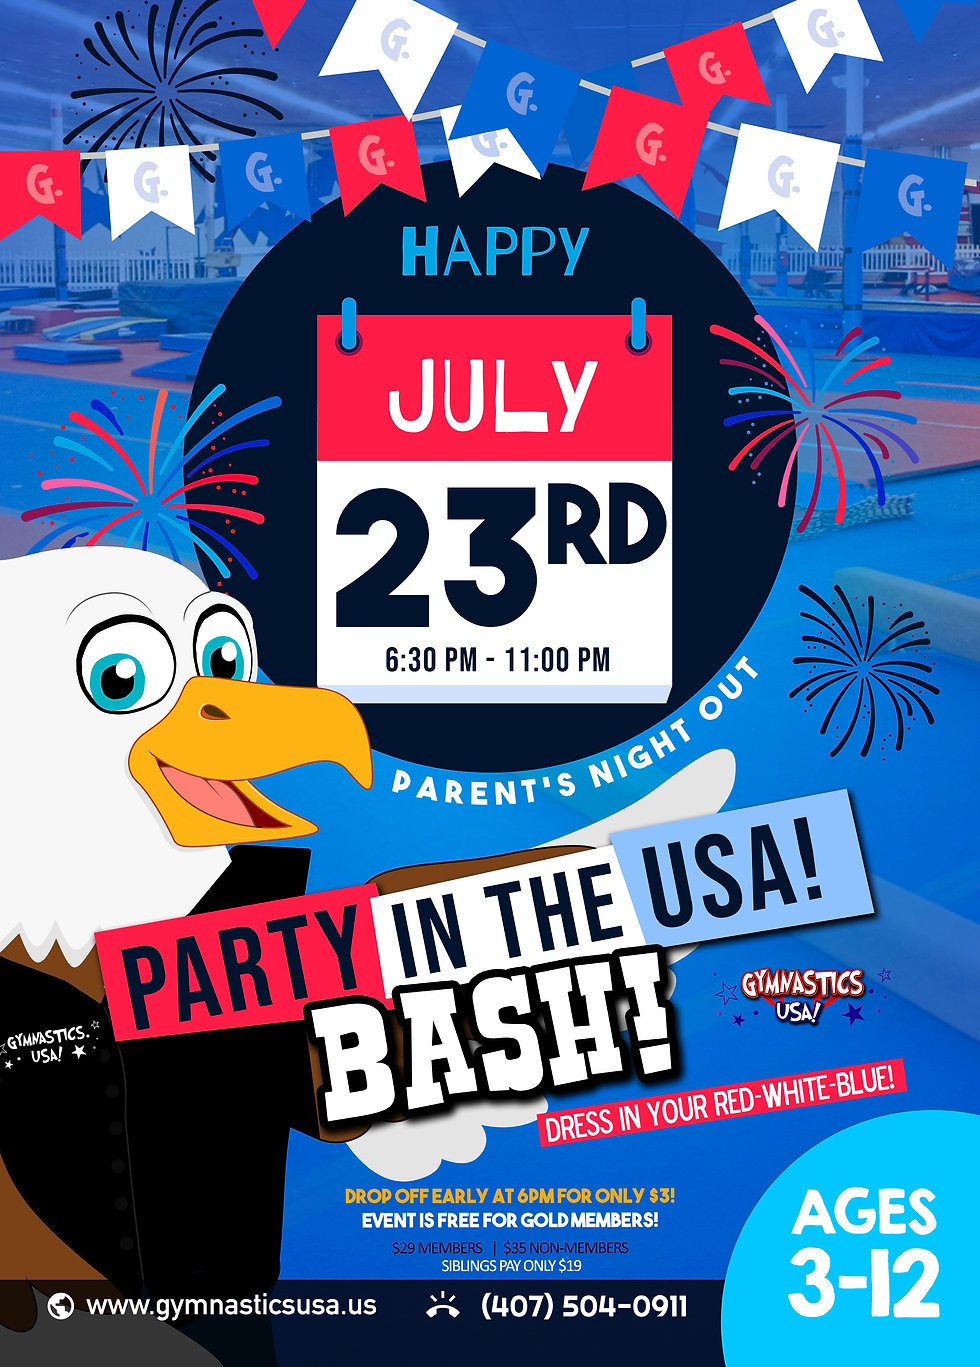 Party in the USA Bash PNO Flyer - JULY 2021.jpg